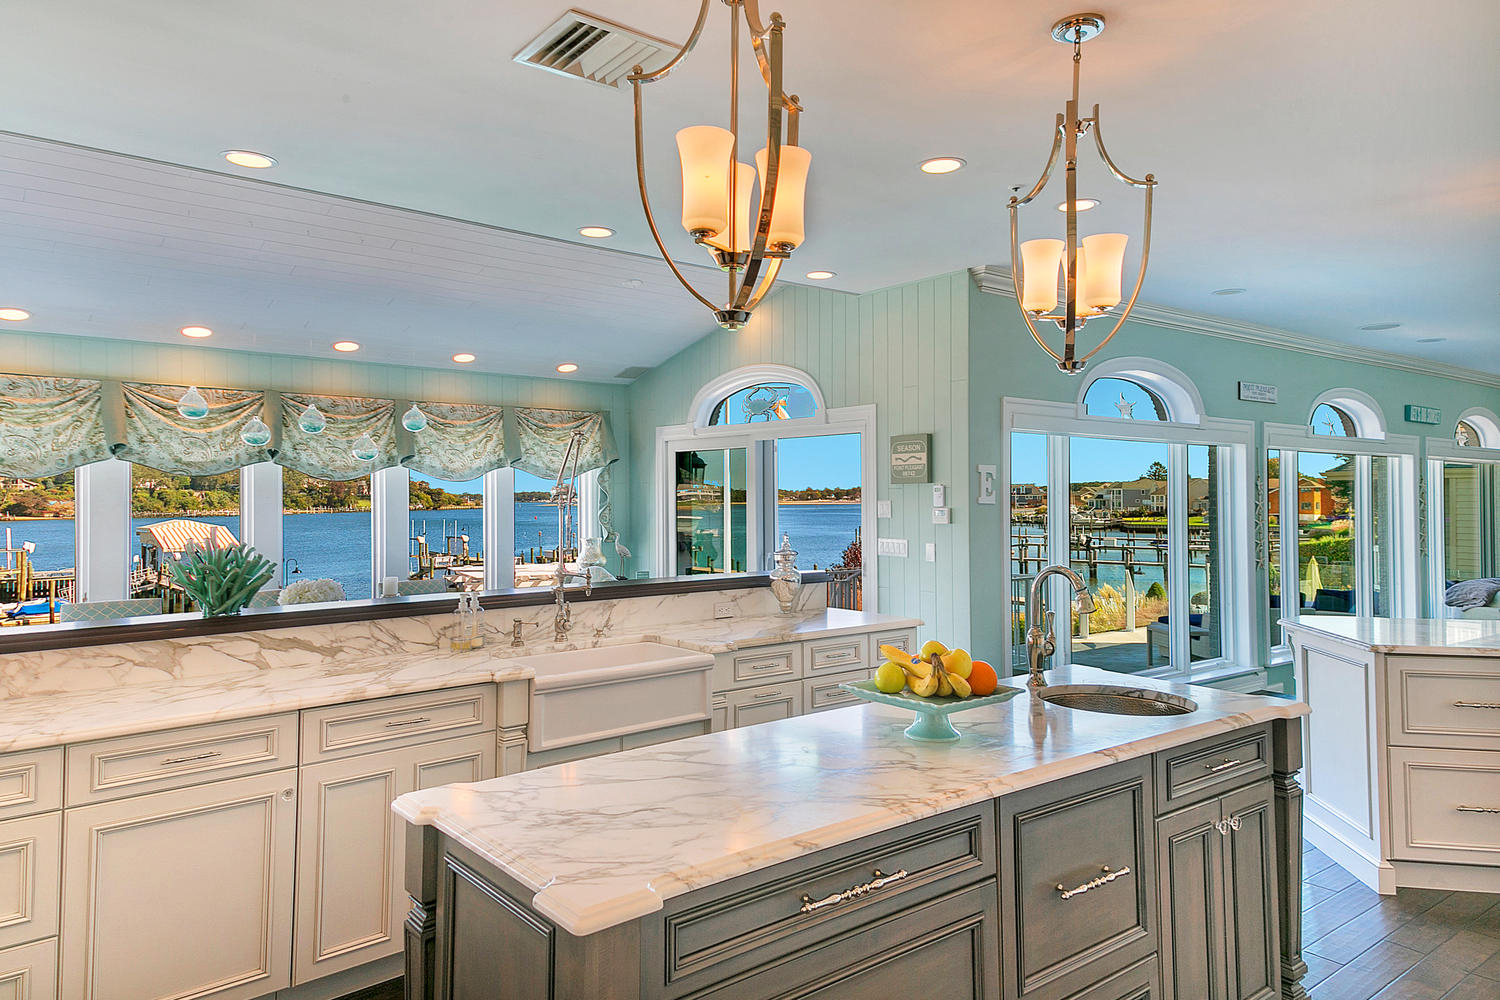 Kitchen Remodeling NJ - Design Line Kitchens in Sea Girt, New Jersey